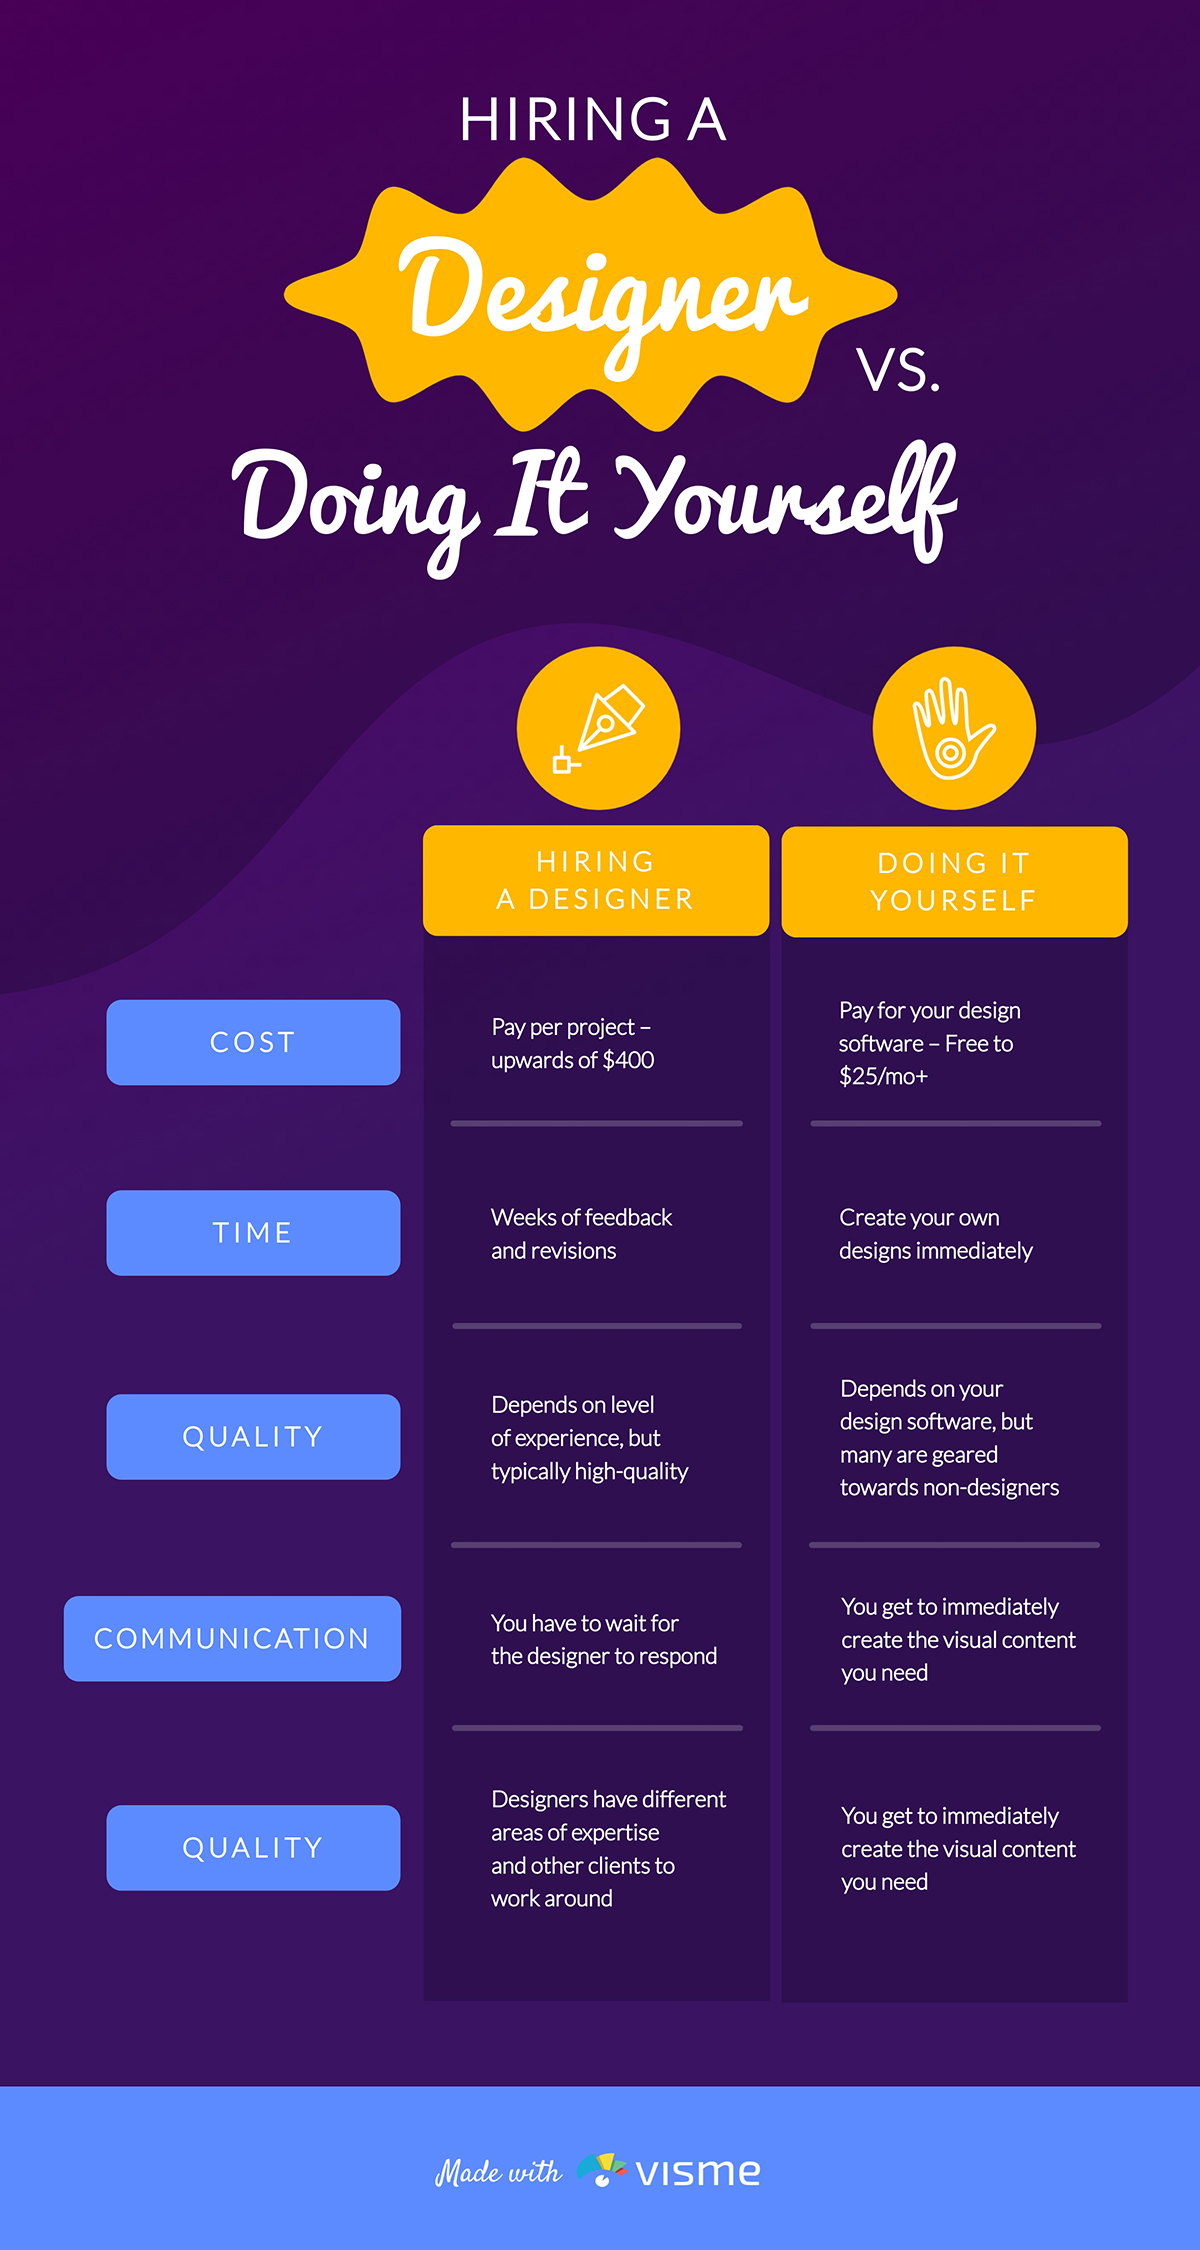 An infographic comparing hiring a designer versus creating social media graphics yourself.